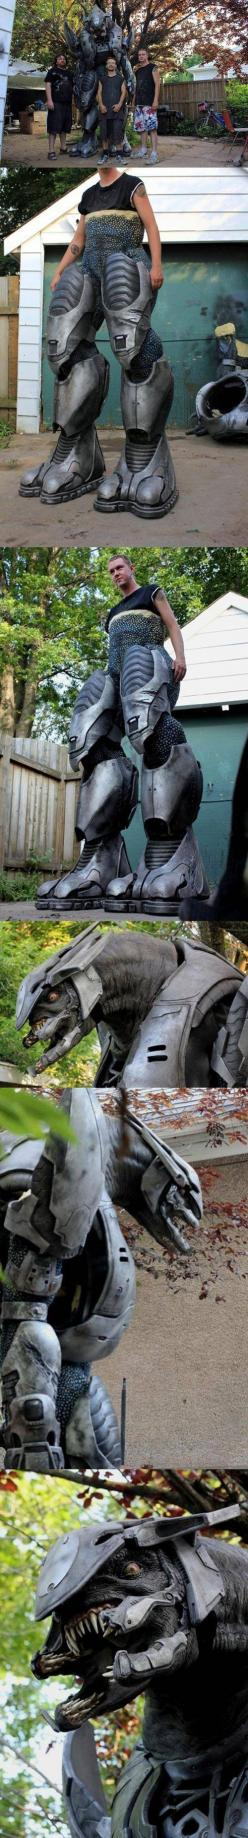 Dude. Halo Covenant Elite cosplay. *Swoon*: Halo Elite, Covenant Elite, Halloween Costumes, Stuff, Best Costume, Awesome, Elite Cosplay, Cosplay Costumes, Halo Covenant